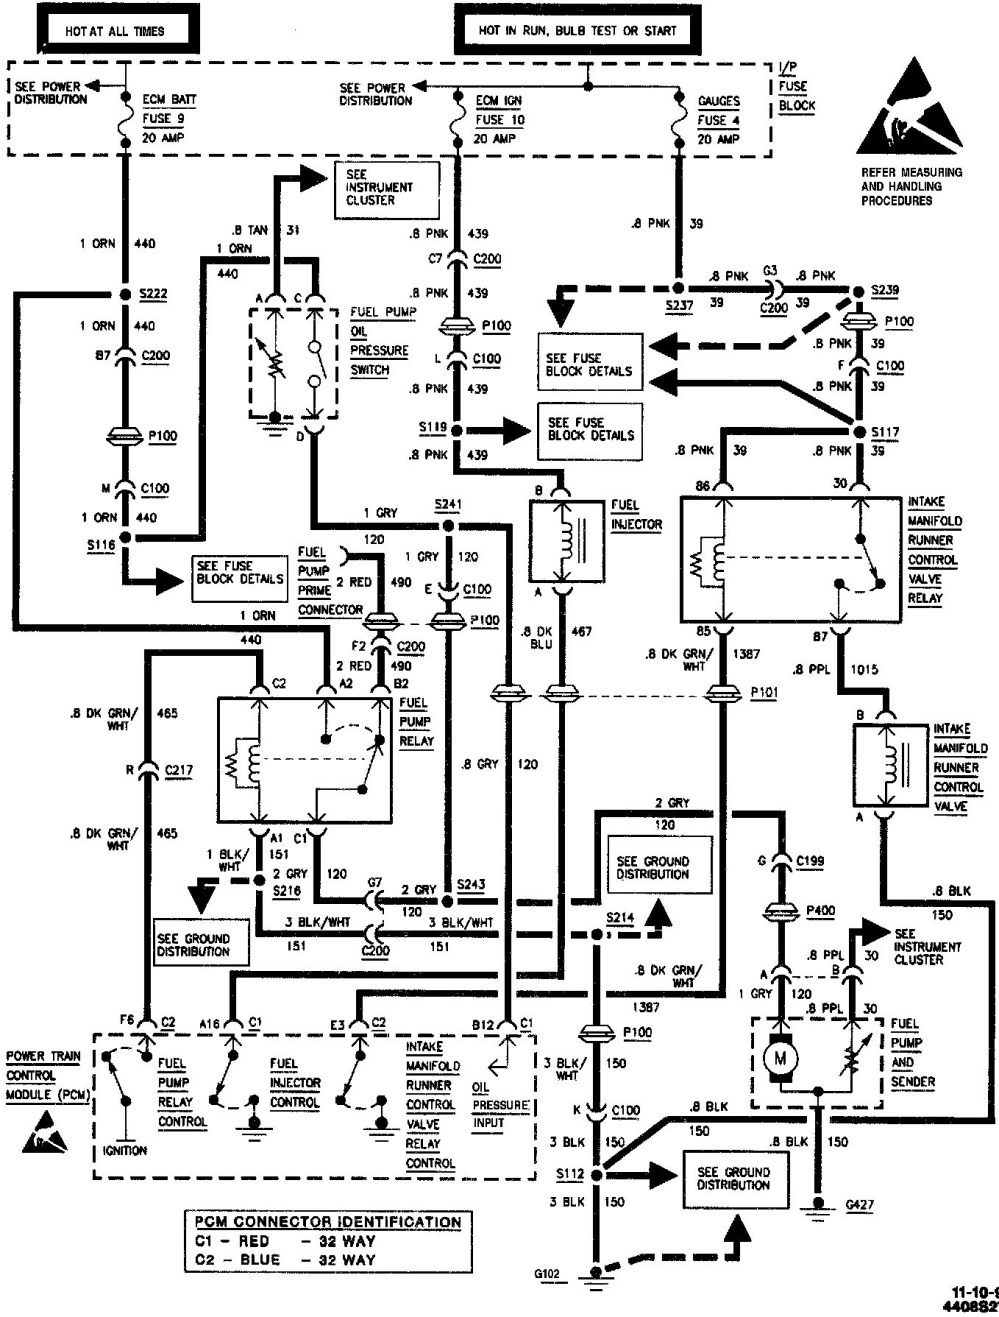 medium resolution of 95 s10 wiring harness diagram wiring diagram load aac wiring diagram for 95 s10 pickup wiring